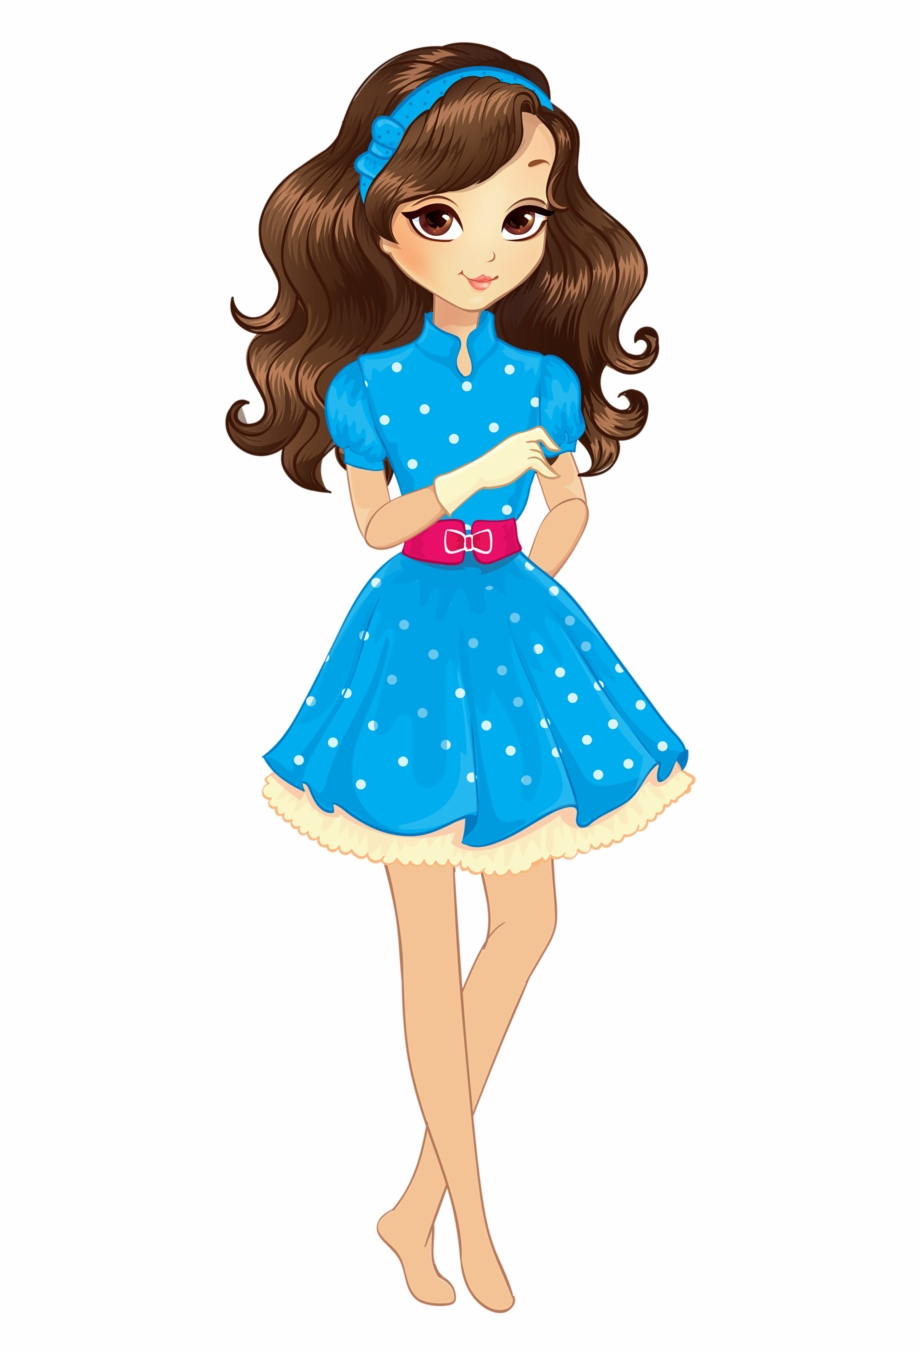 Teenagergirl clipart png transparent library Girl Clipart Transparent Background - Cute Teenage Girl ... png transparent library